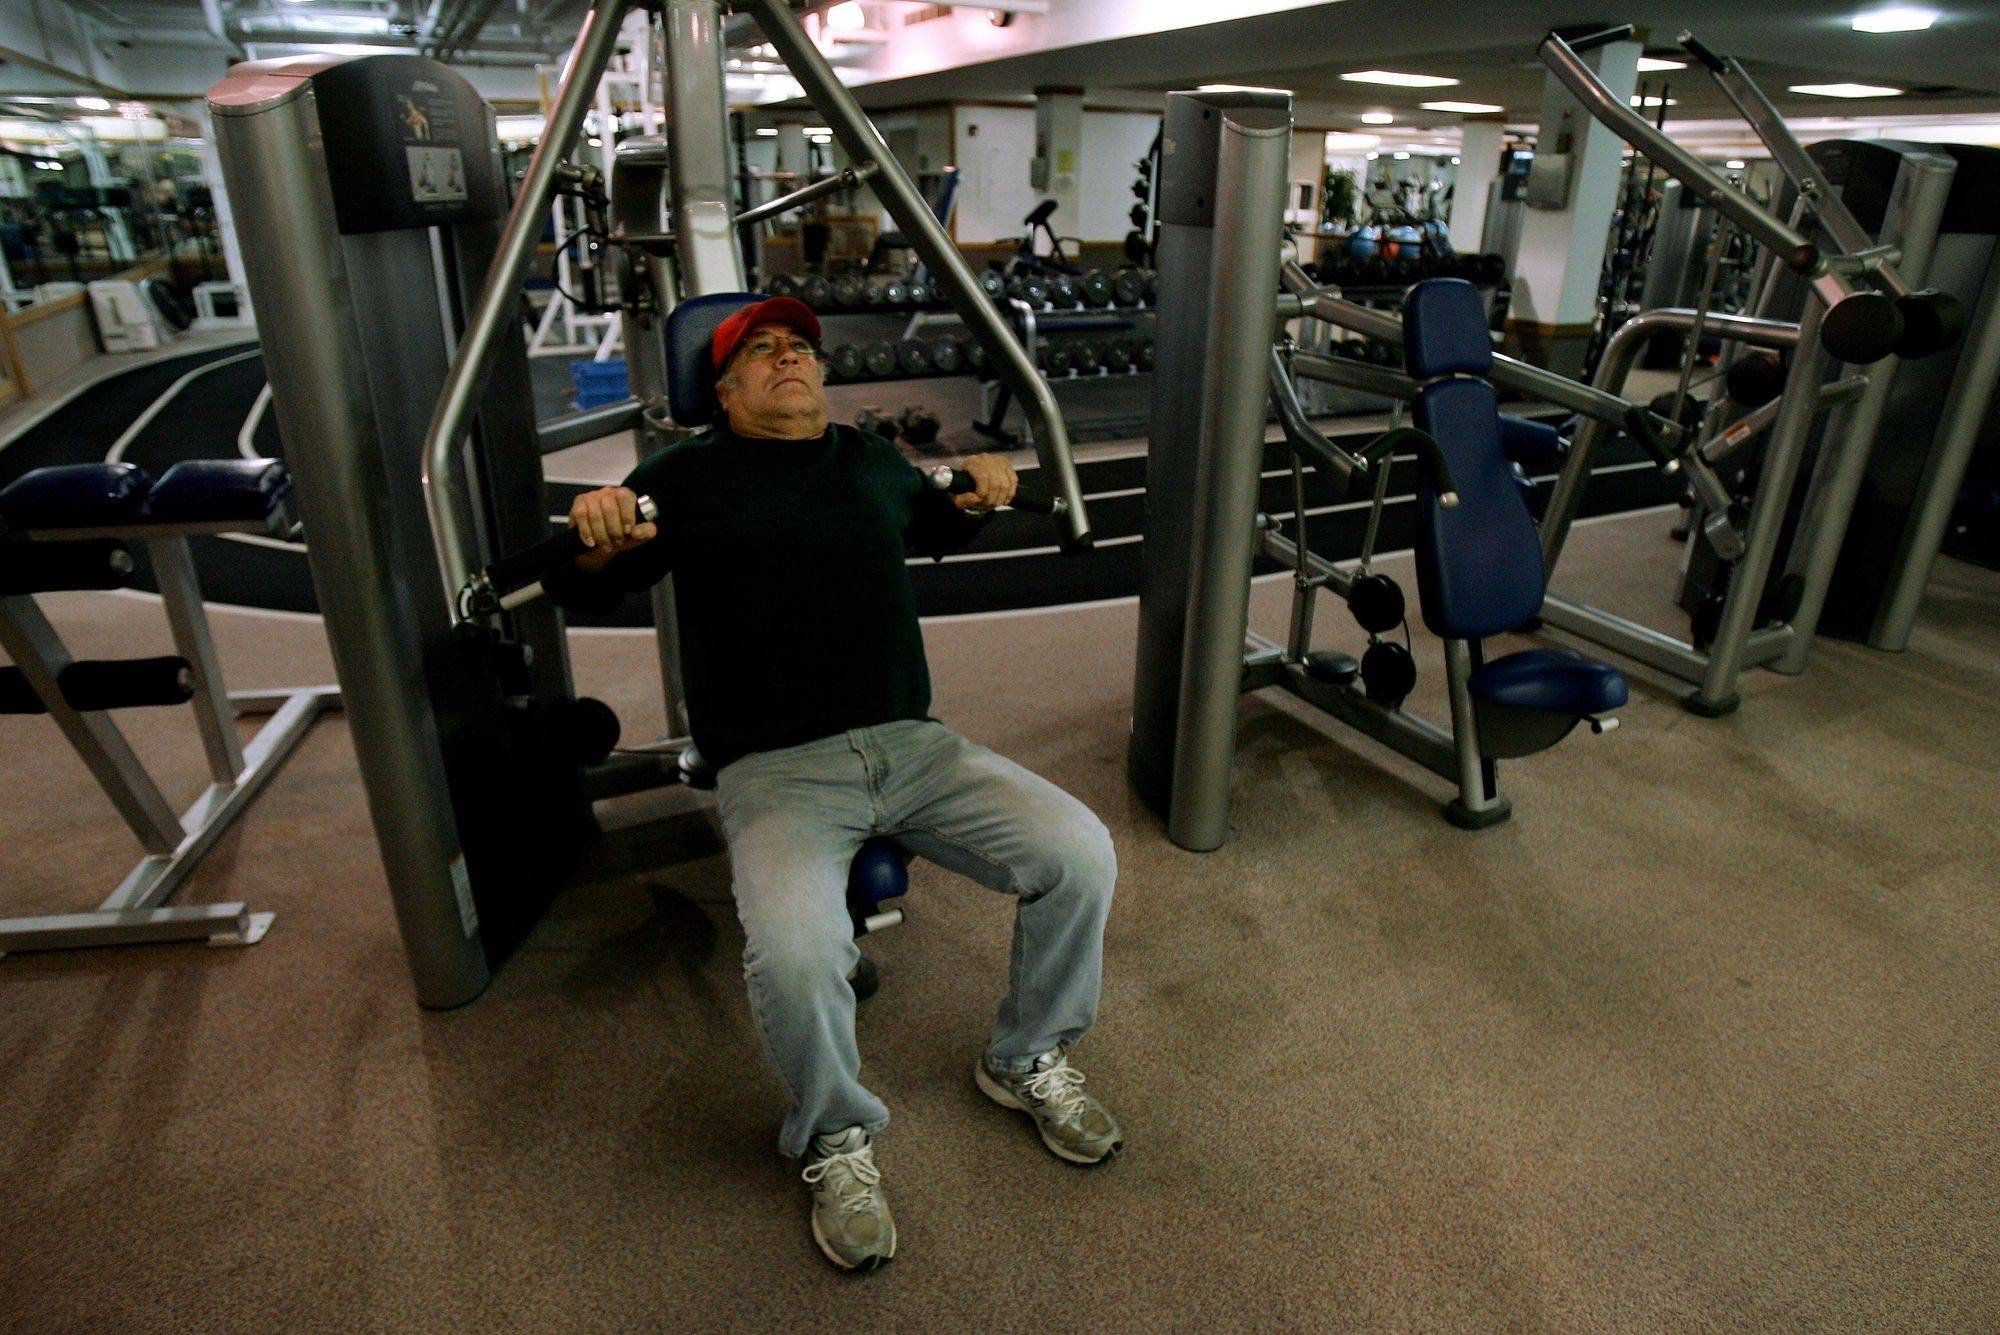 Chon Perez of Round Lake Park lifts weights Monday at the Round Lake Area Park District's fitness center. The facility closes April 30.